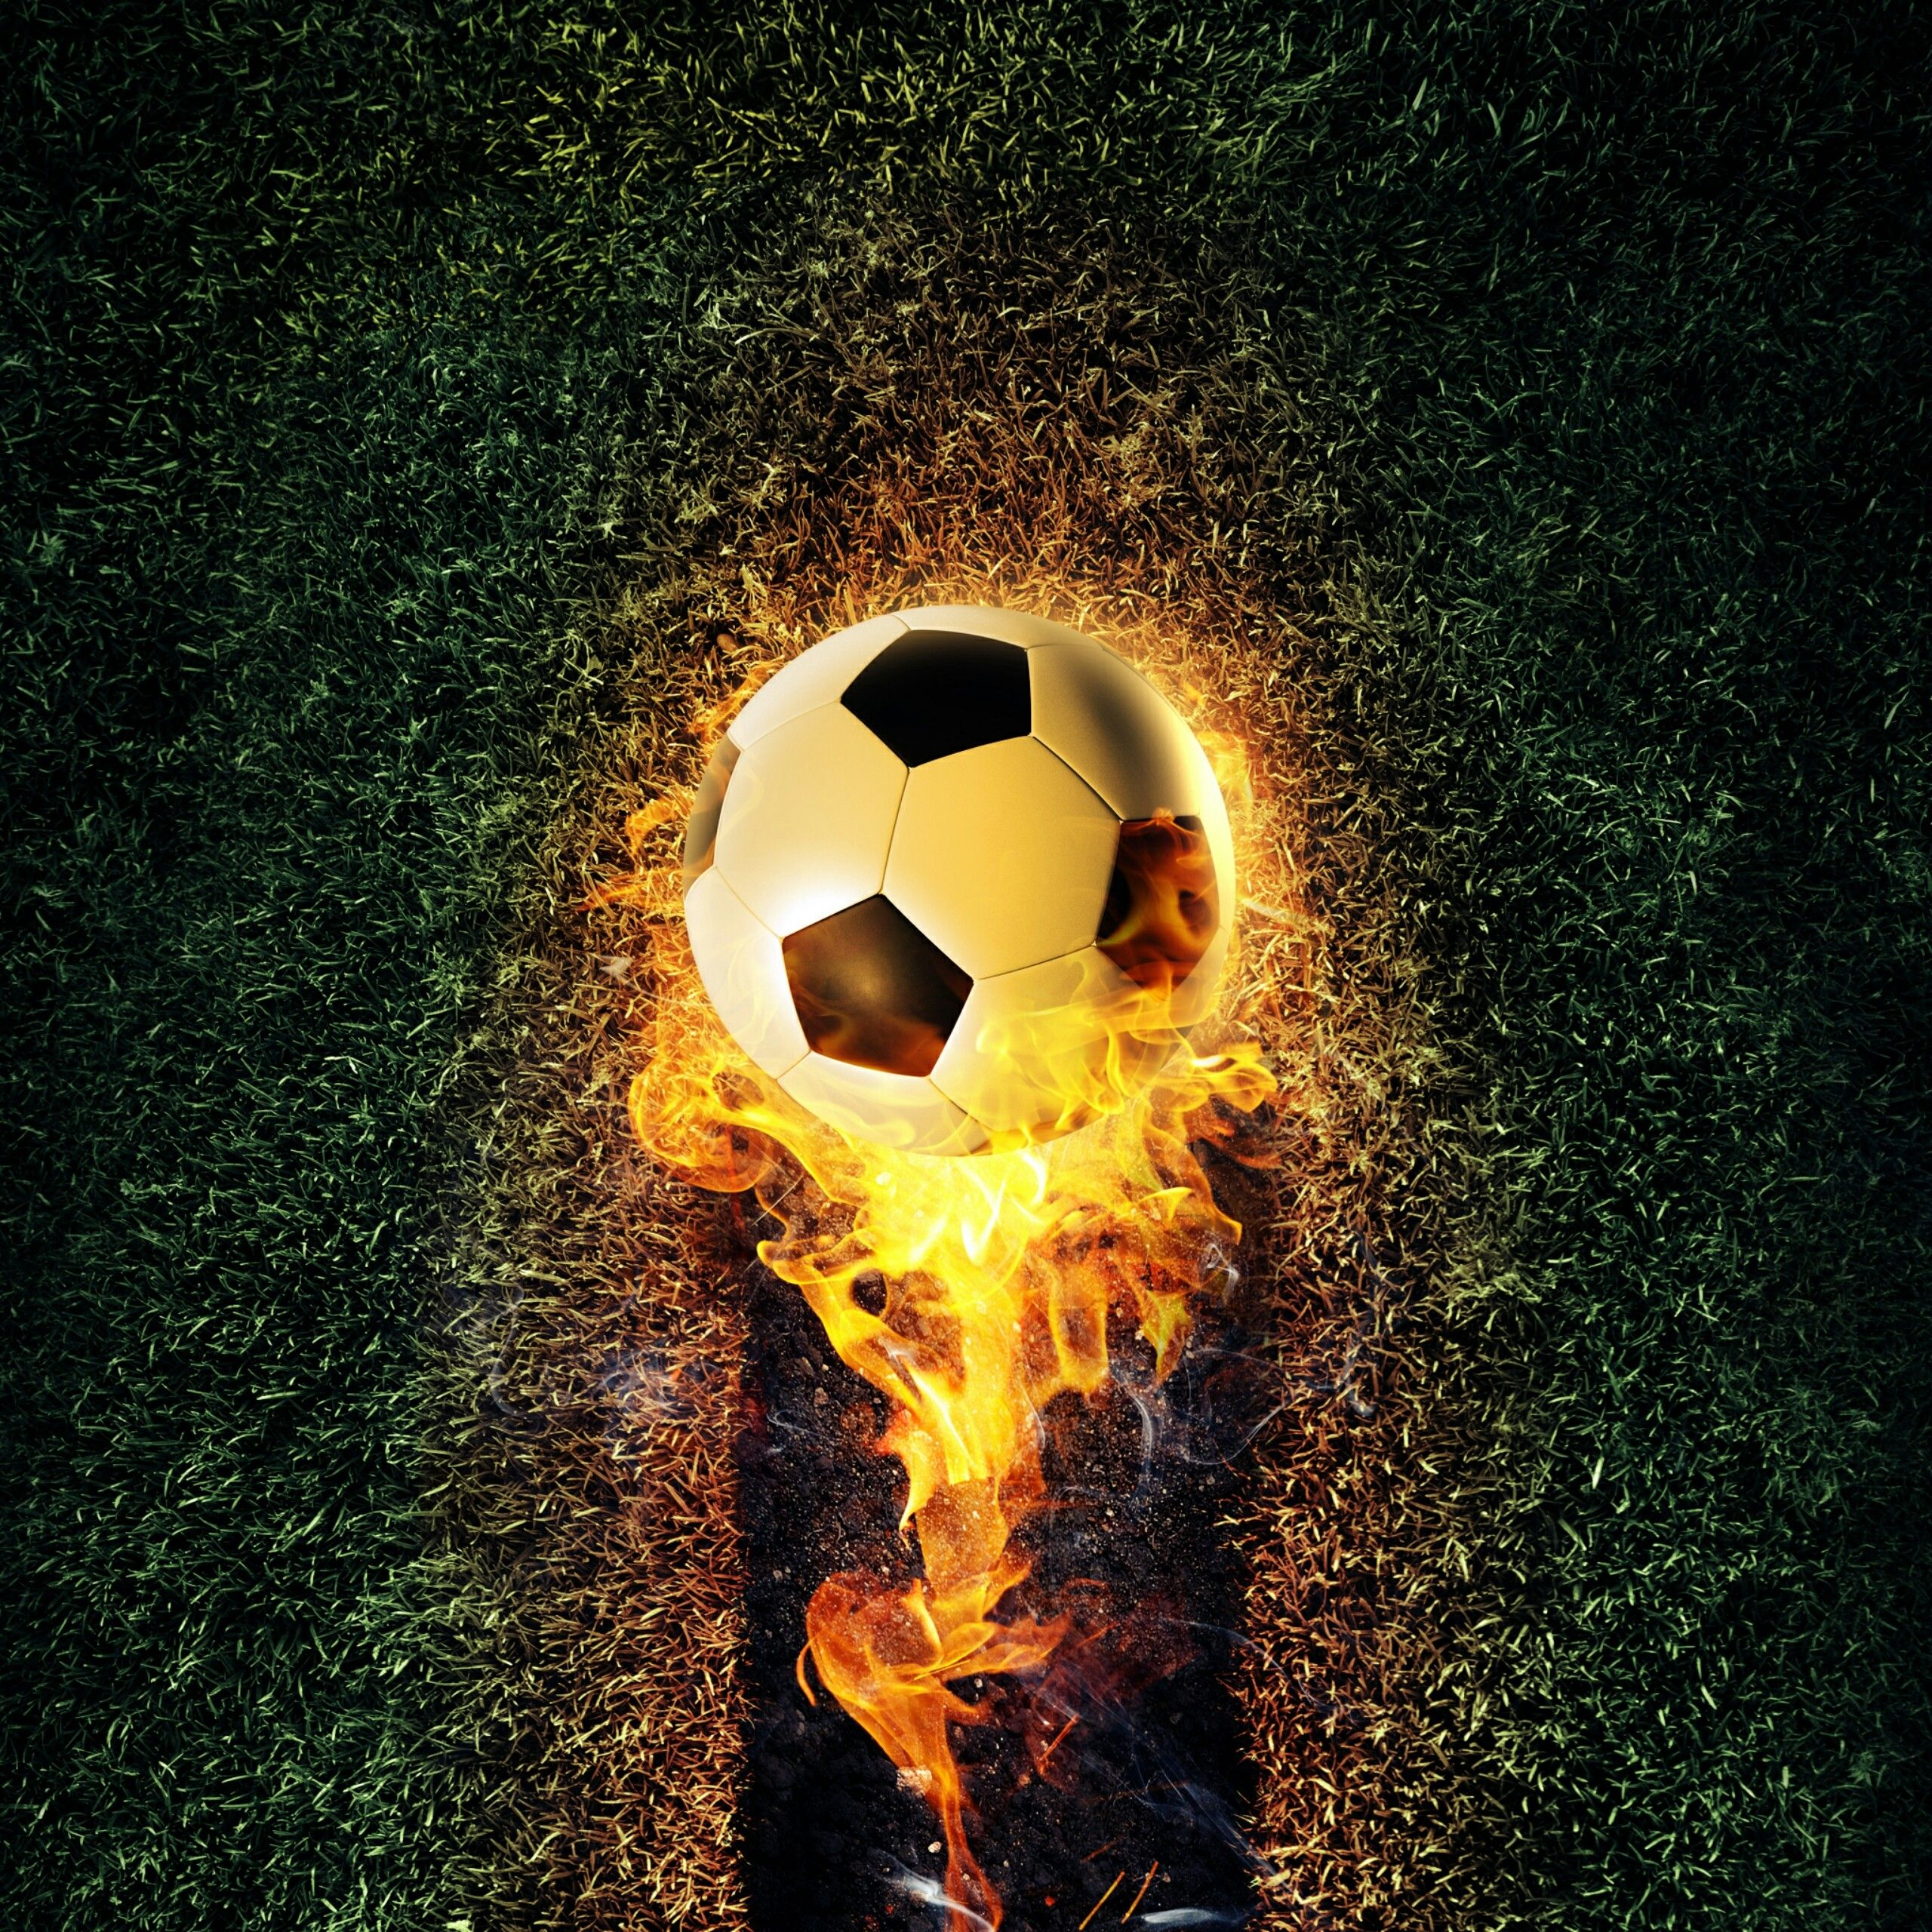 The Ball On Fire Soccer Football Sports QHD Wallpaper 2 - Fondo de pantalla